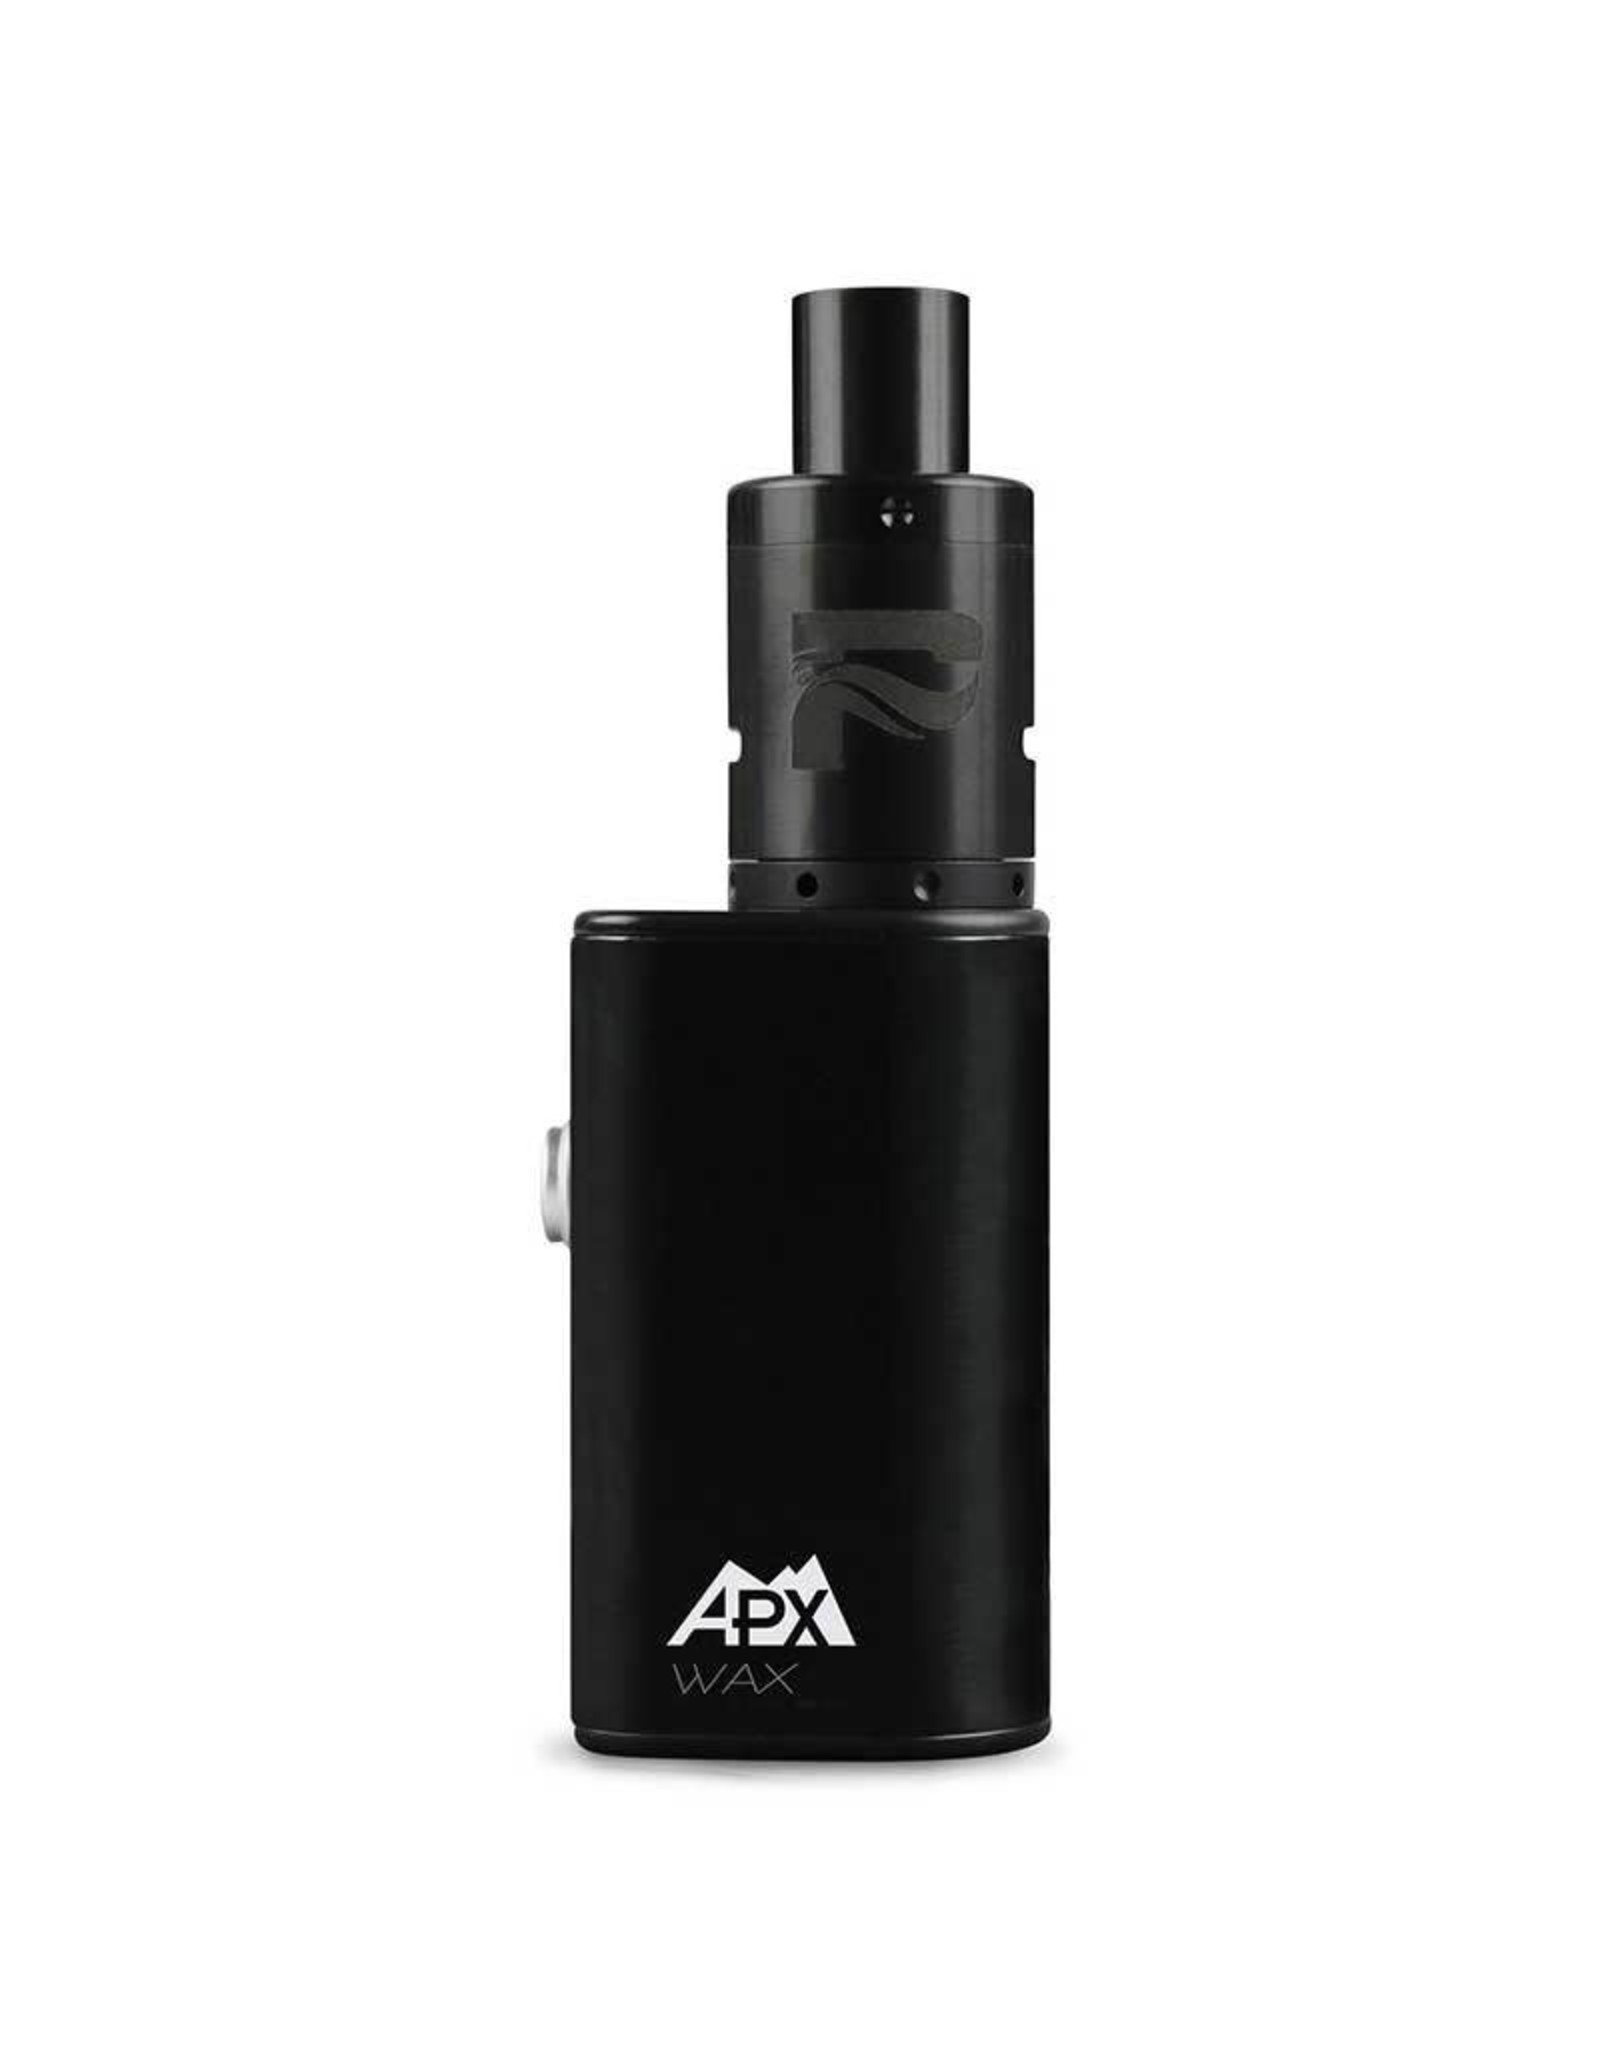 Pulsar Pulsar APX VOLT Variable Voltage Vaporizer - All Metal Black